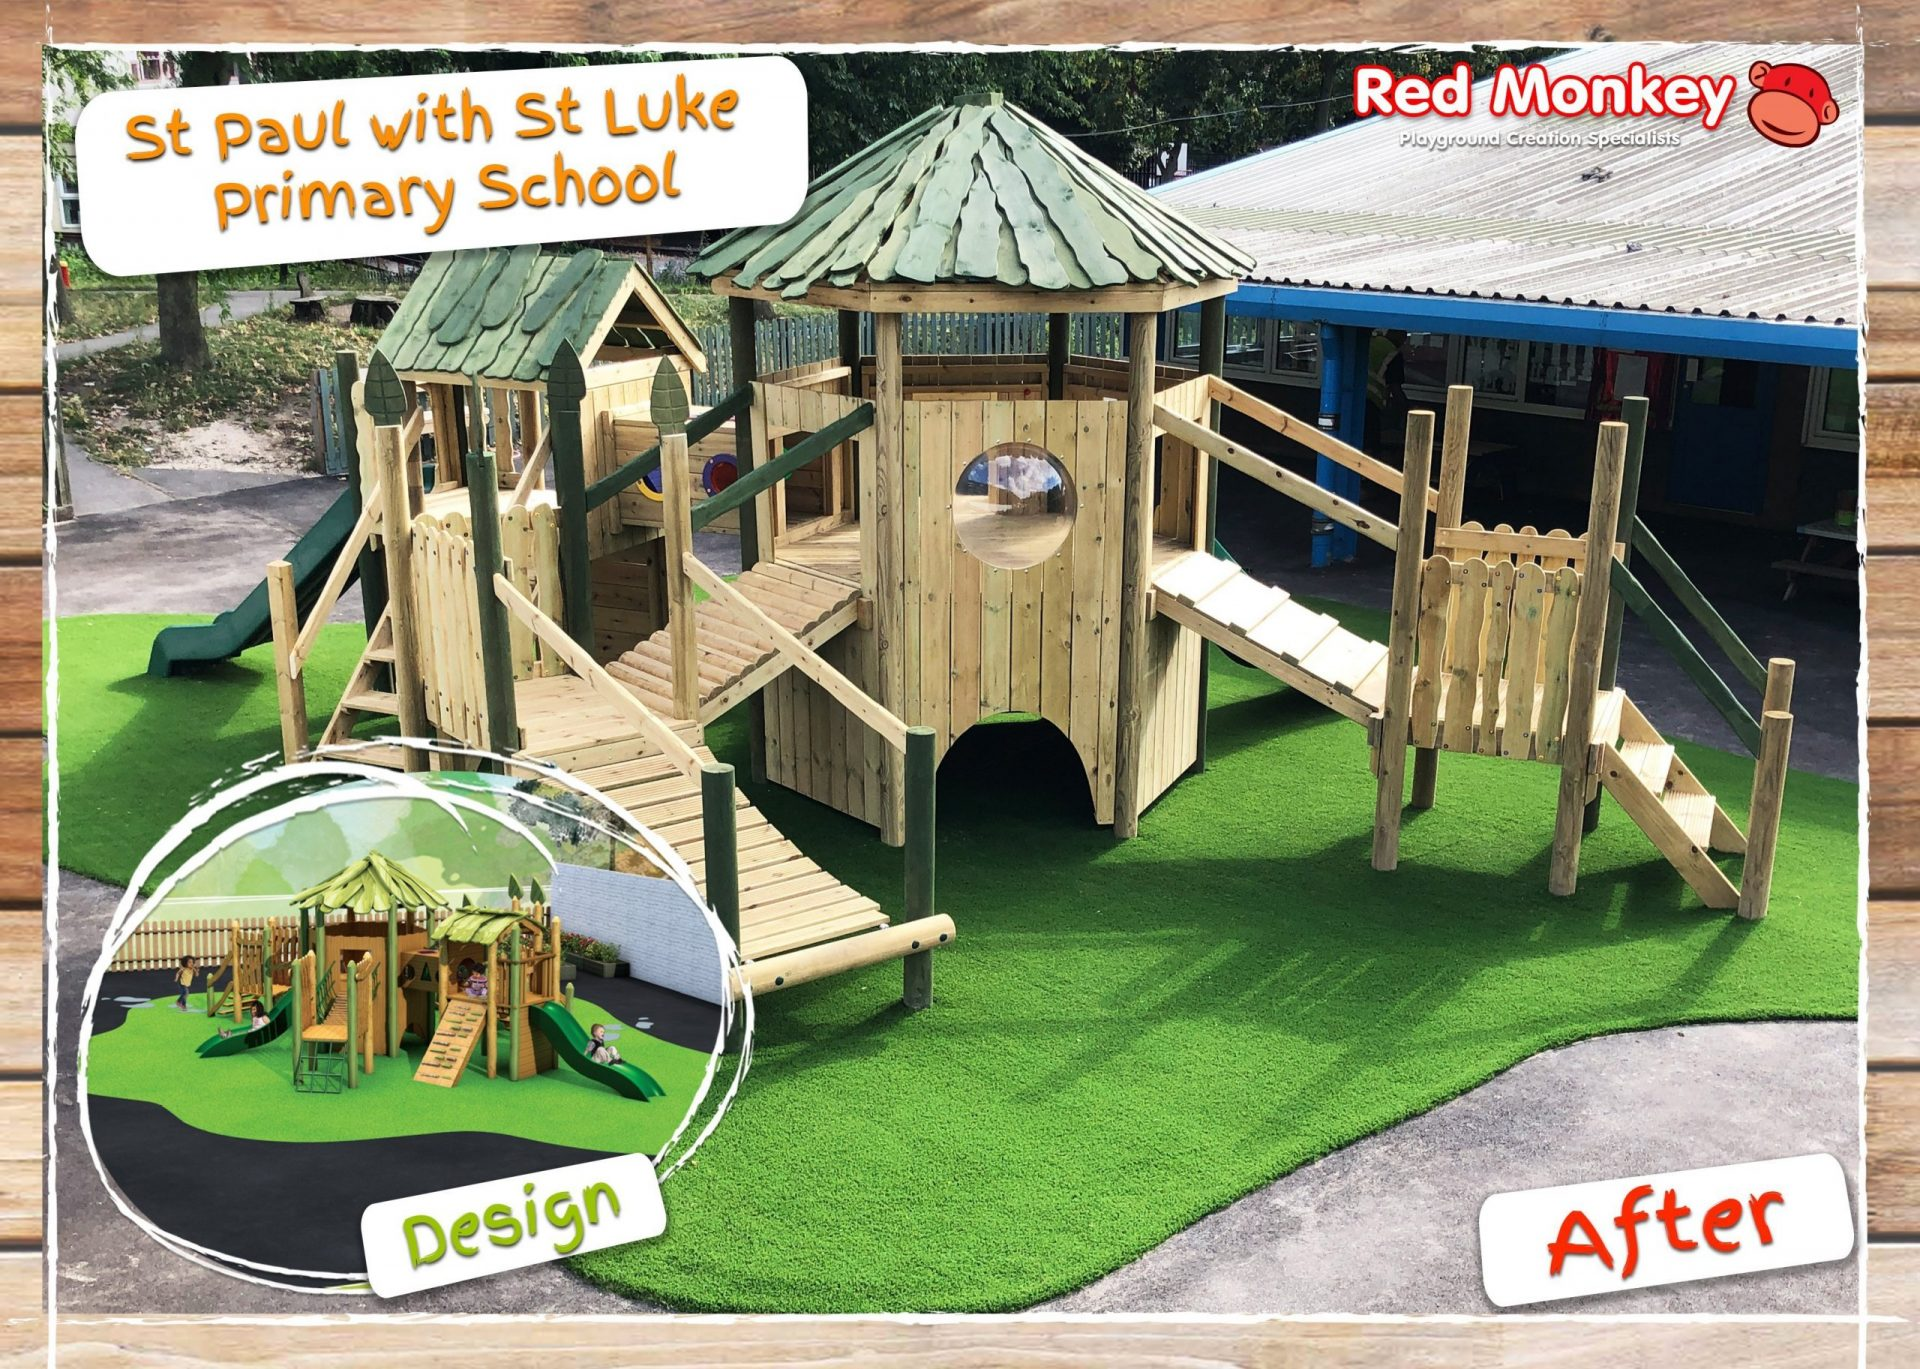 wooden climbing frame at st lukes primary school design mockup